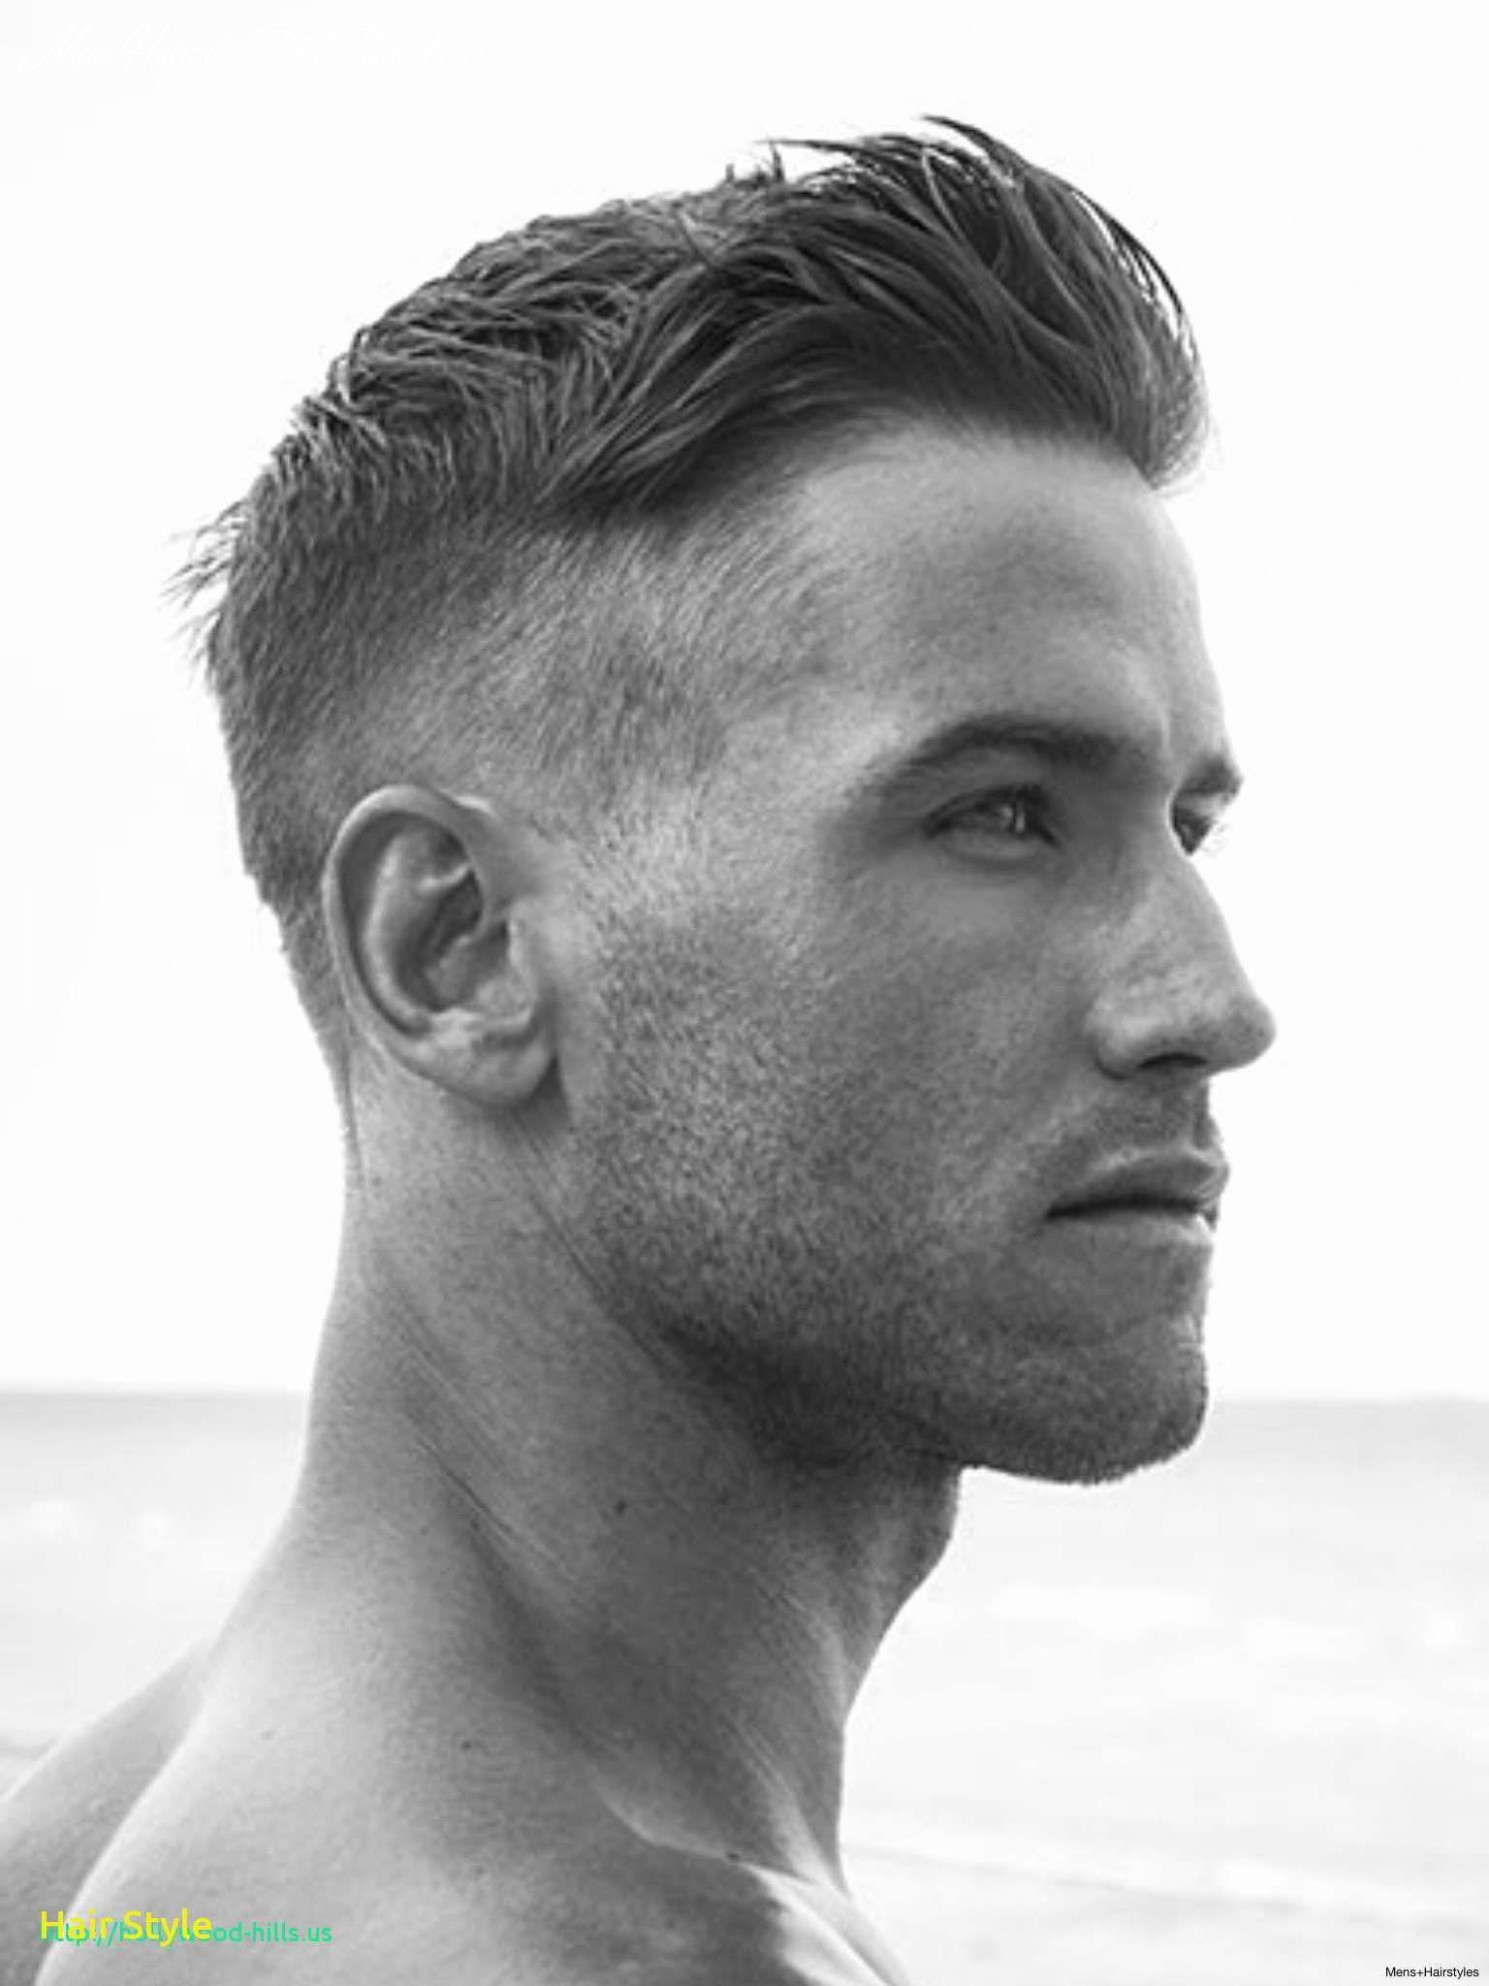 Cool hairstyles for men – finding a style that suits you | mens